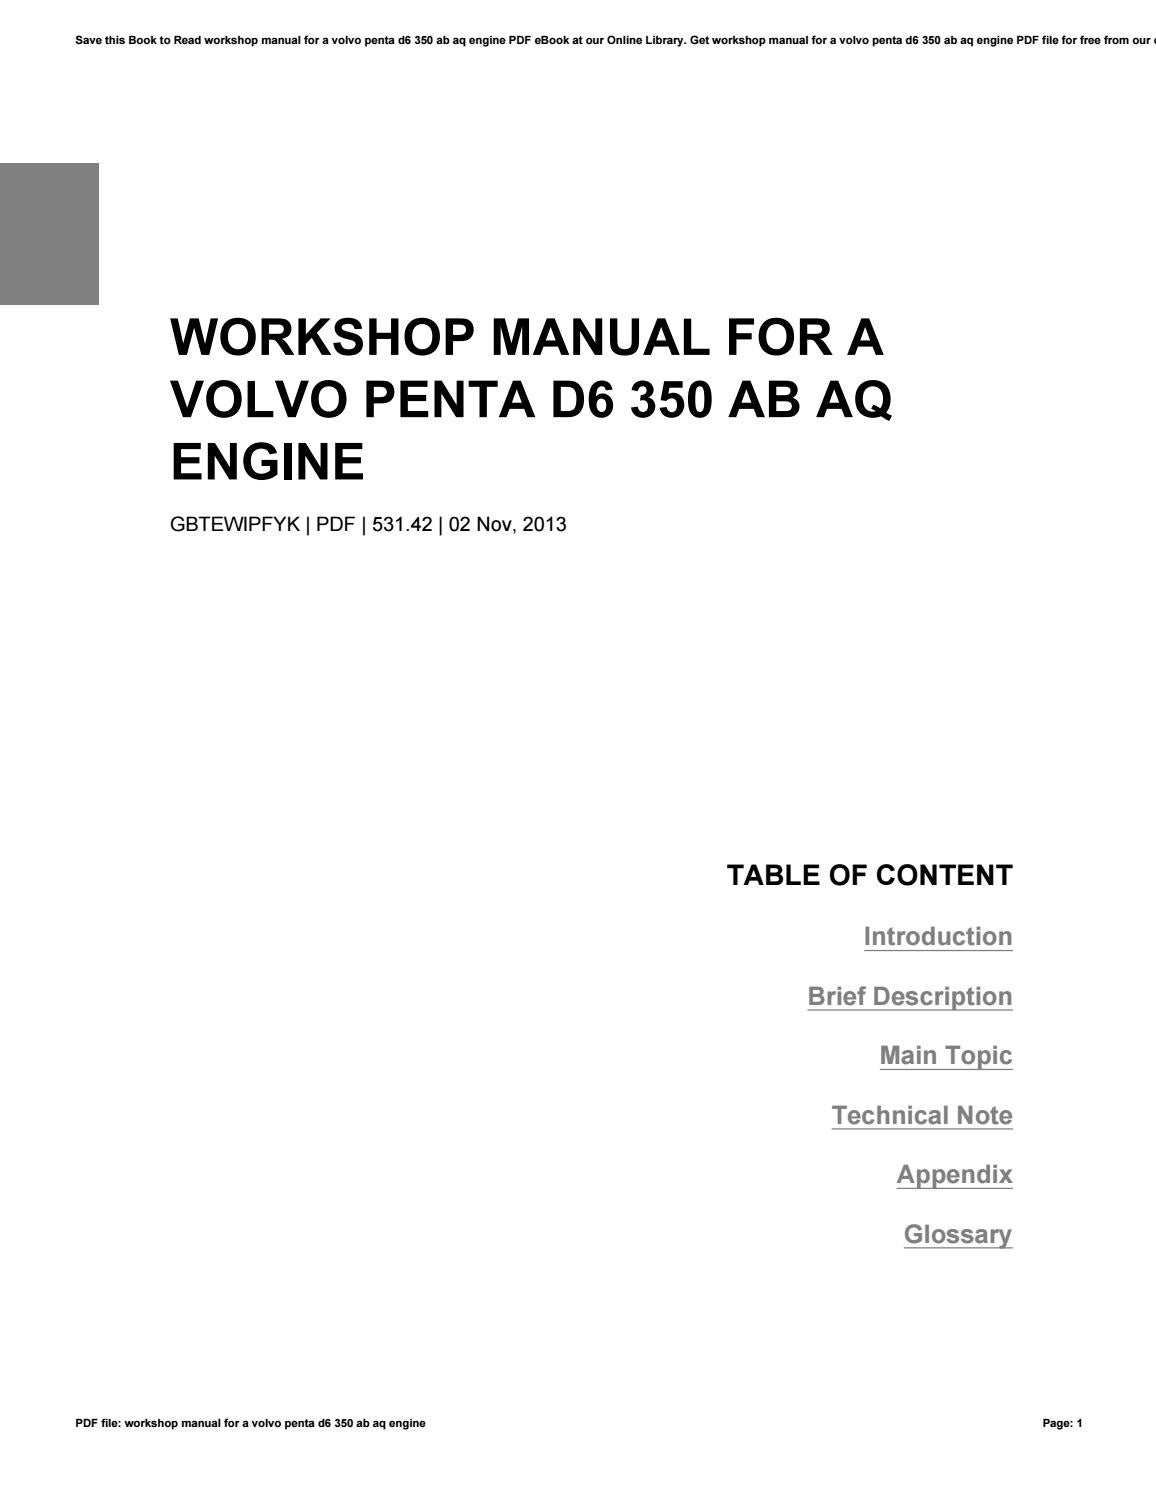 Workshop manual for a volvo penta d6 350 ab aq engine by